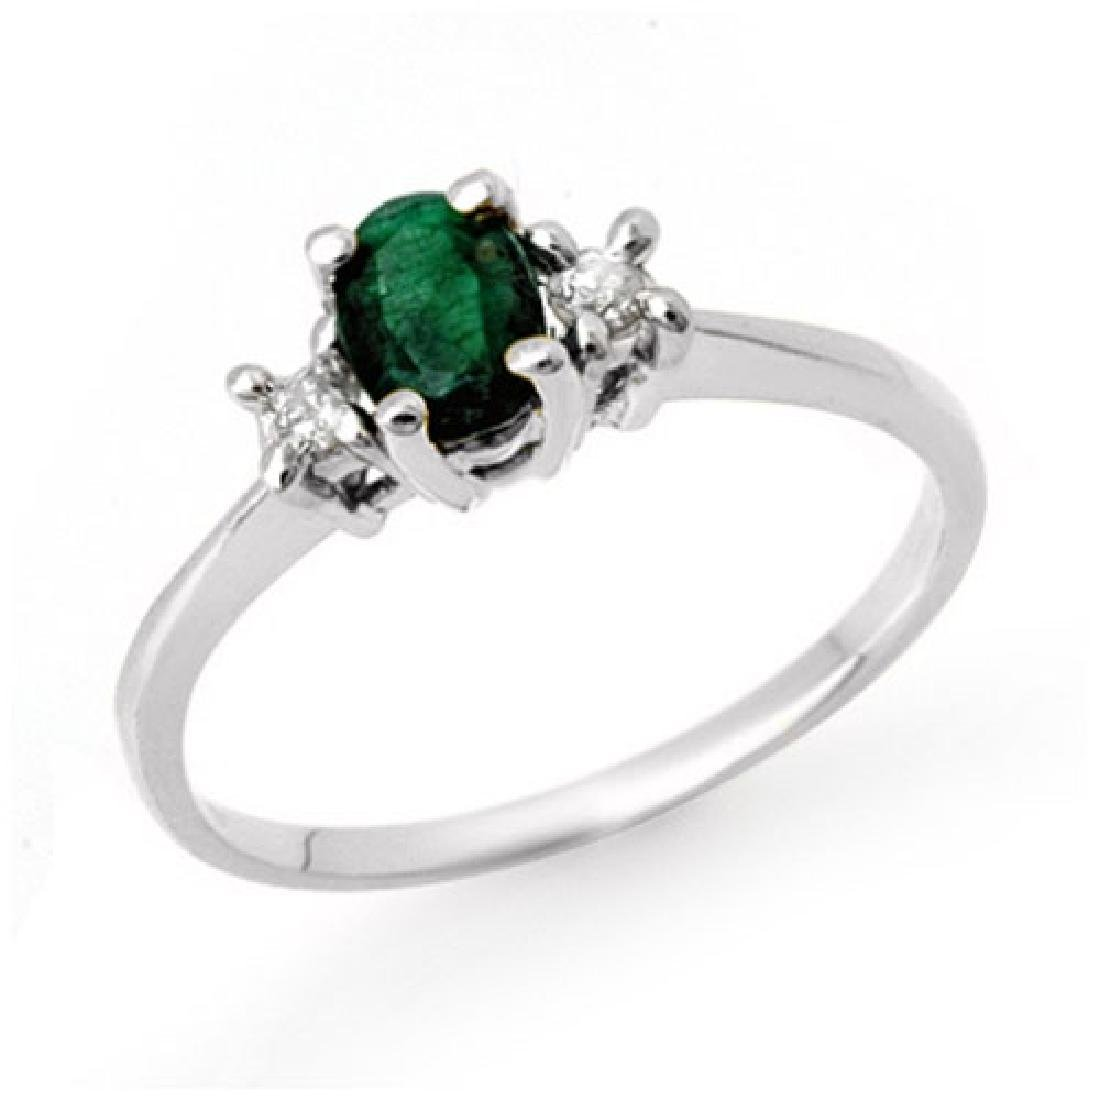 1.04 CTW Emerald & Diamond Ring 10K White Gold